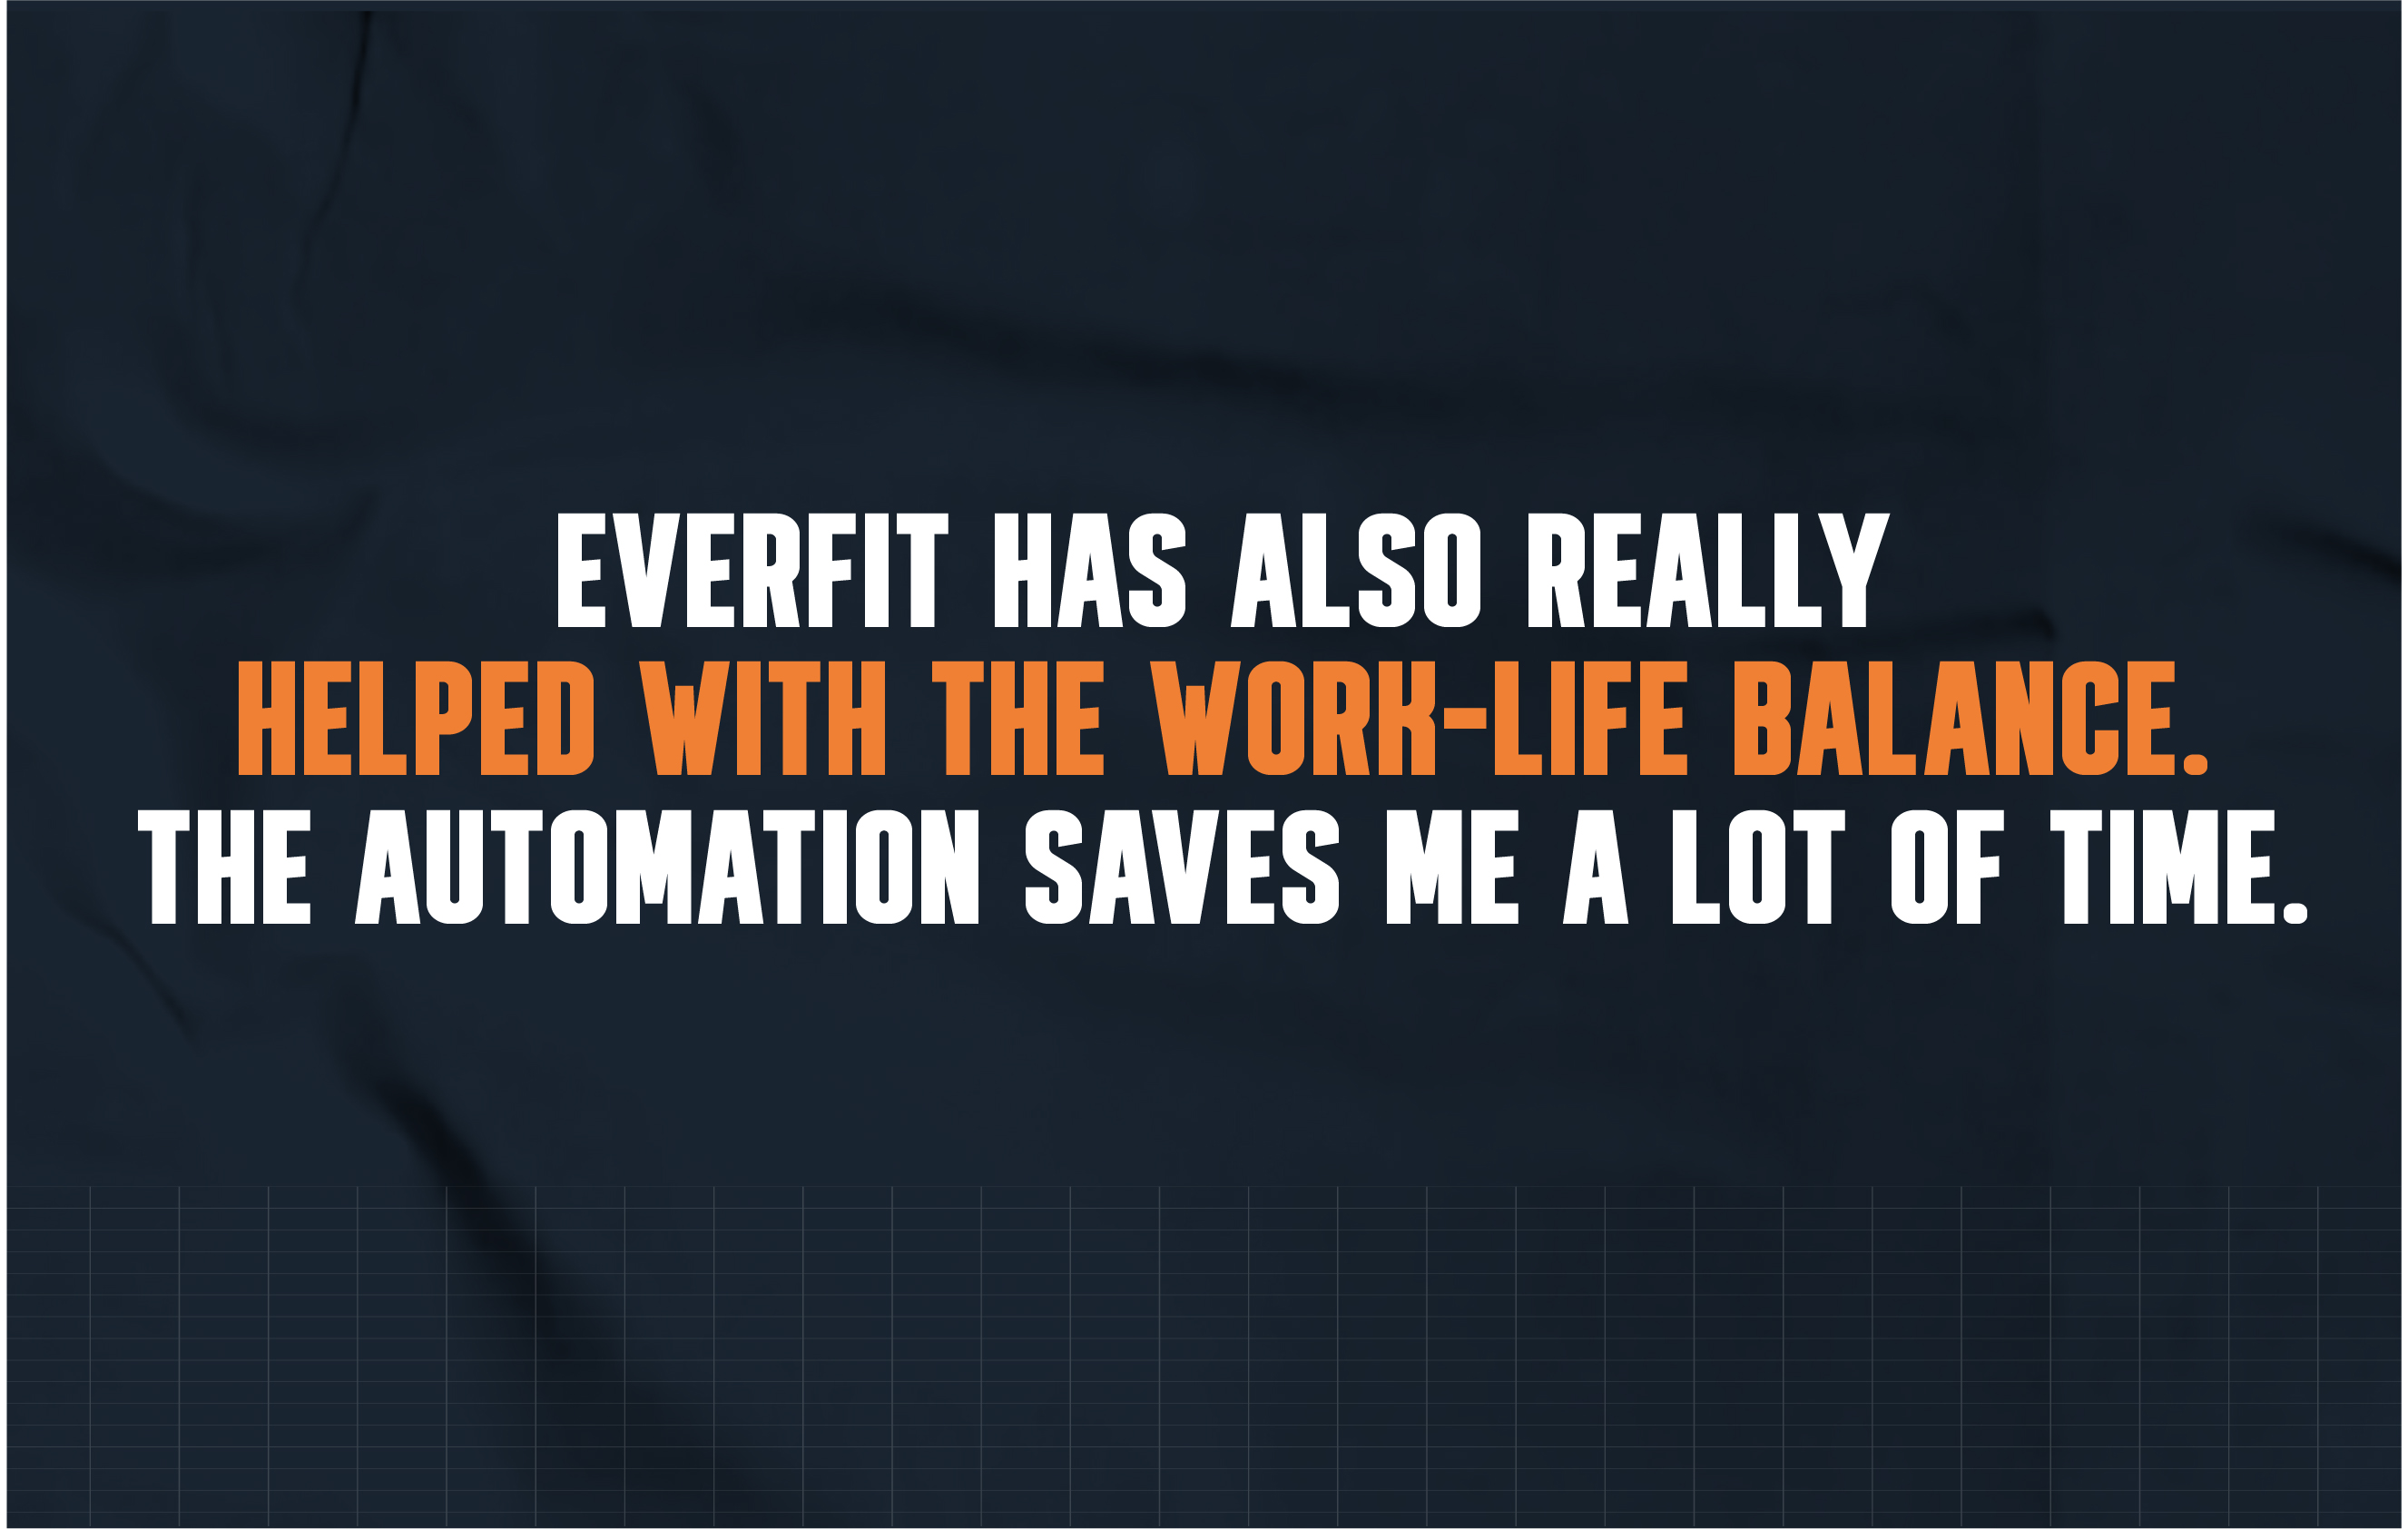 Using Everfit helps online personal trainers achieve work-life balance since its automation saves them a lot of time